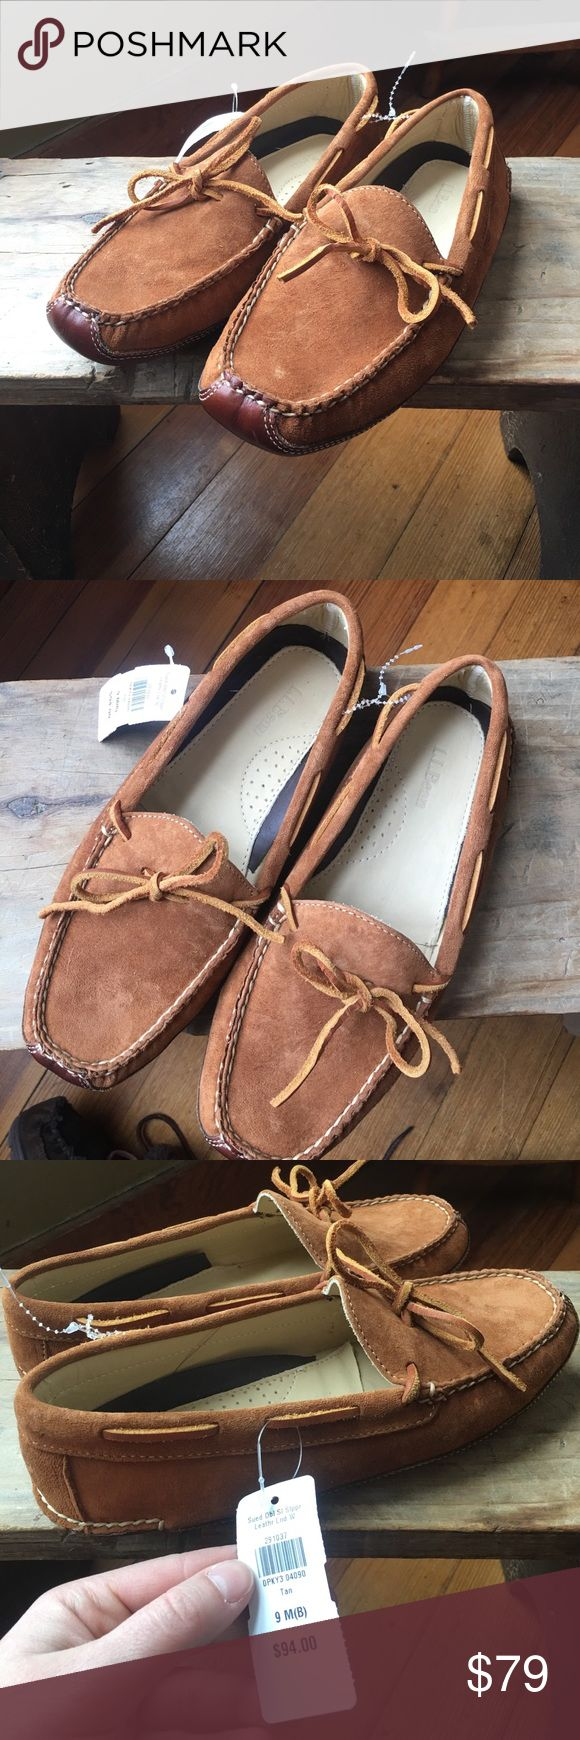 NWT LL Bean Slippers Brand new LL Bean slippers   Size 9   Leather L.L. Bean Shoes Slippers